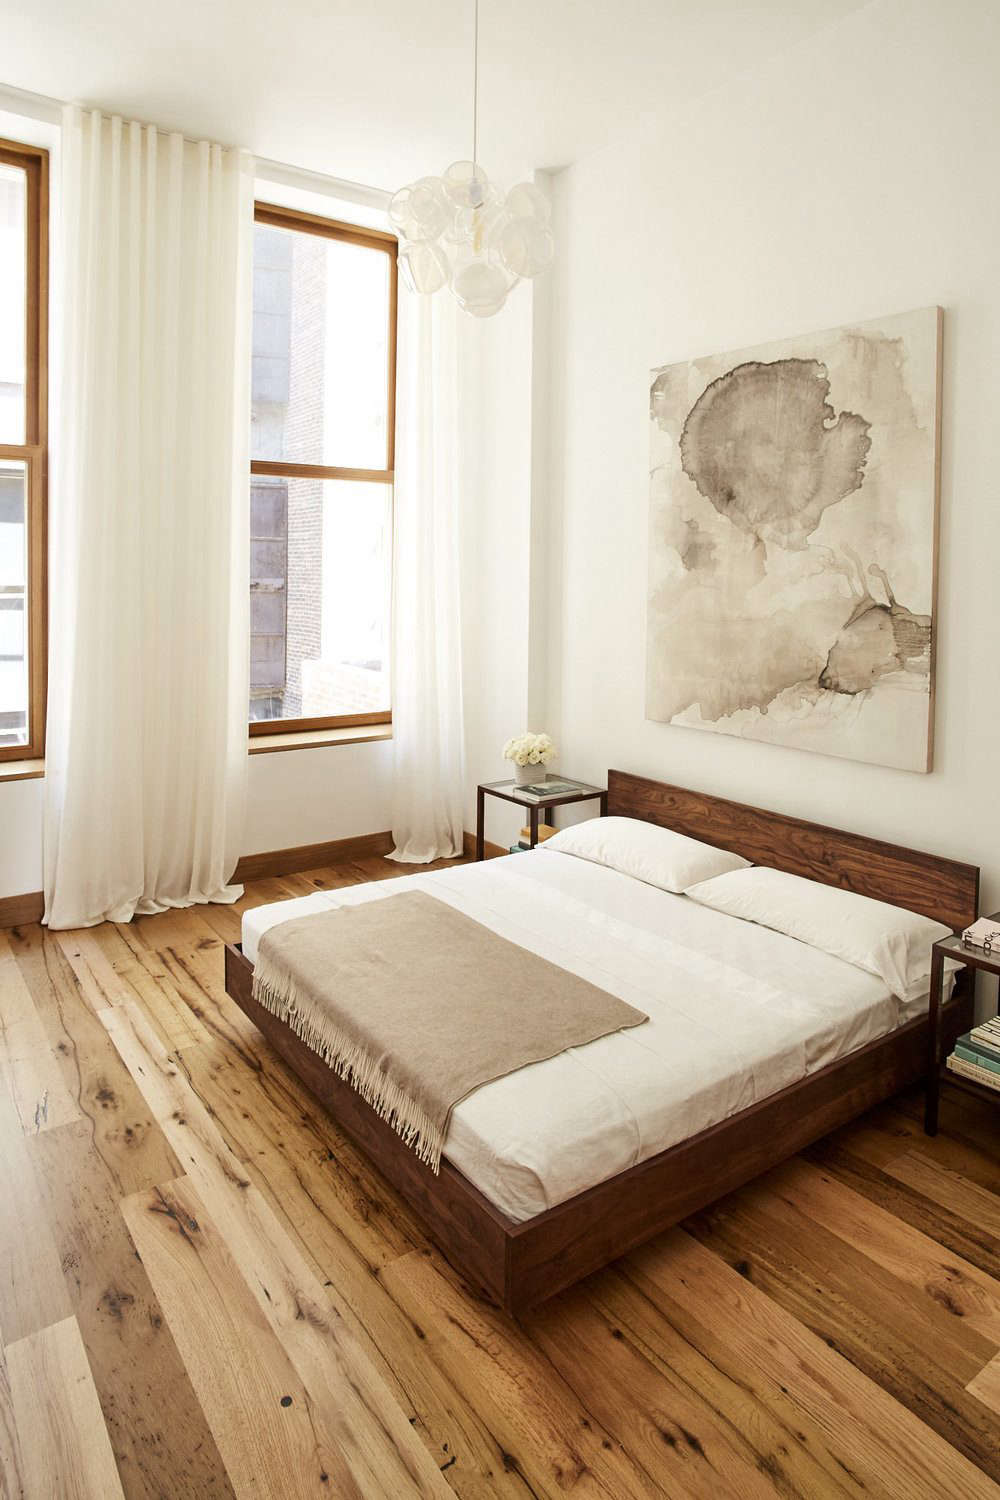 Reclaimed New Face Oak Flooring Sourced From Barns Throughout The  Mid Atlantic Region, In